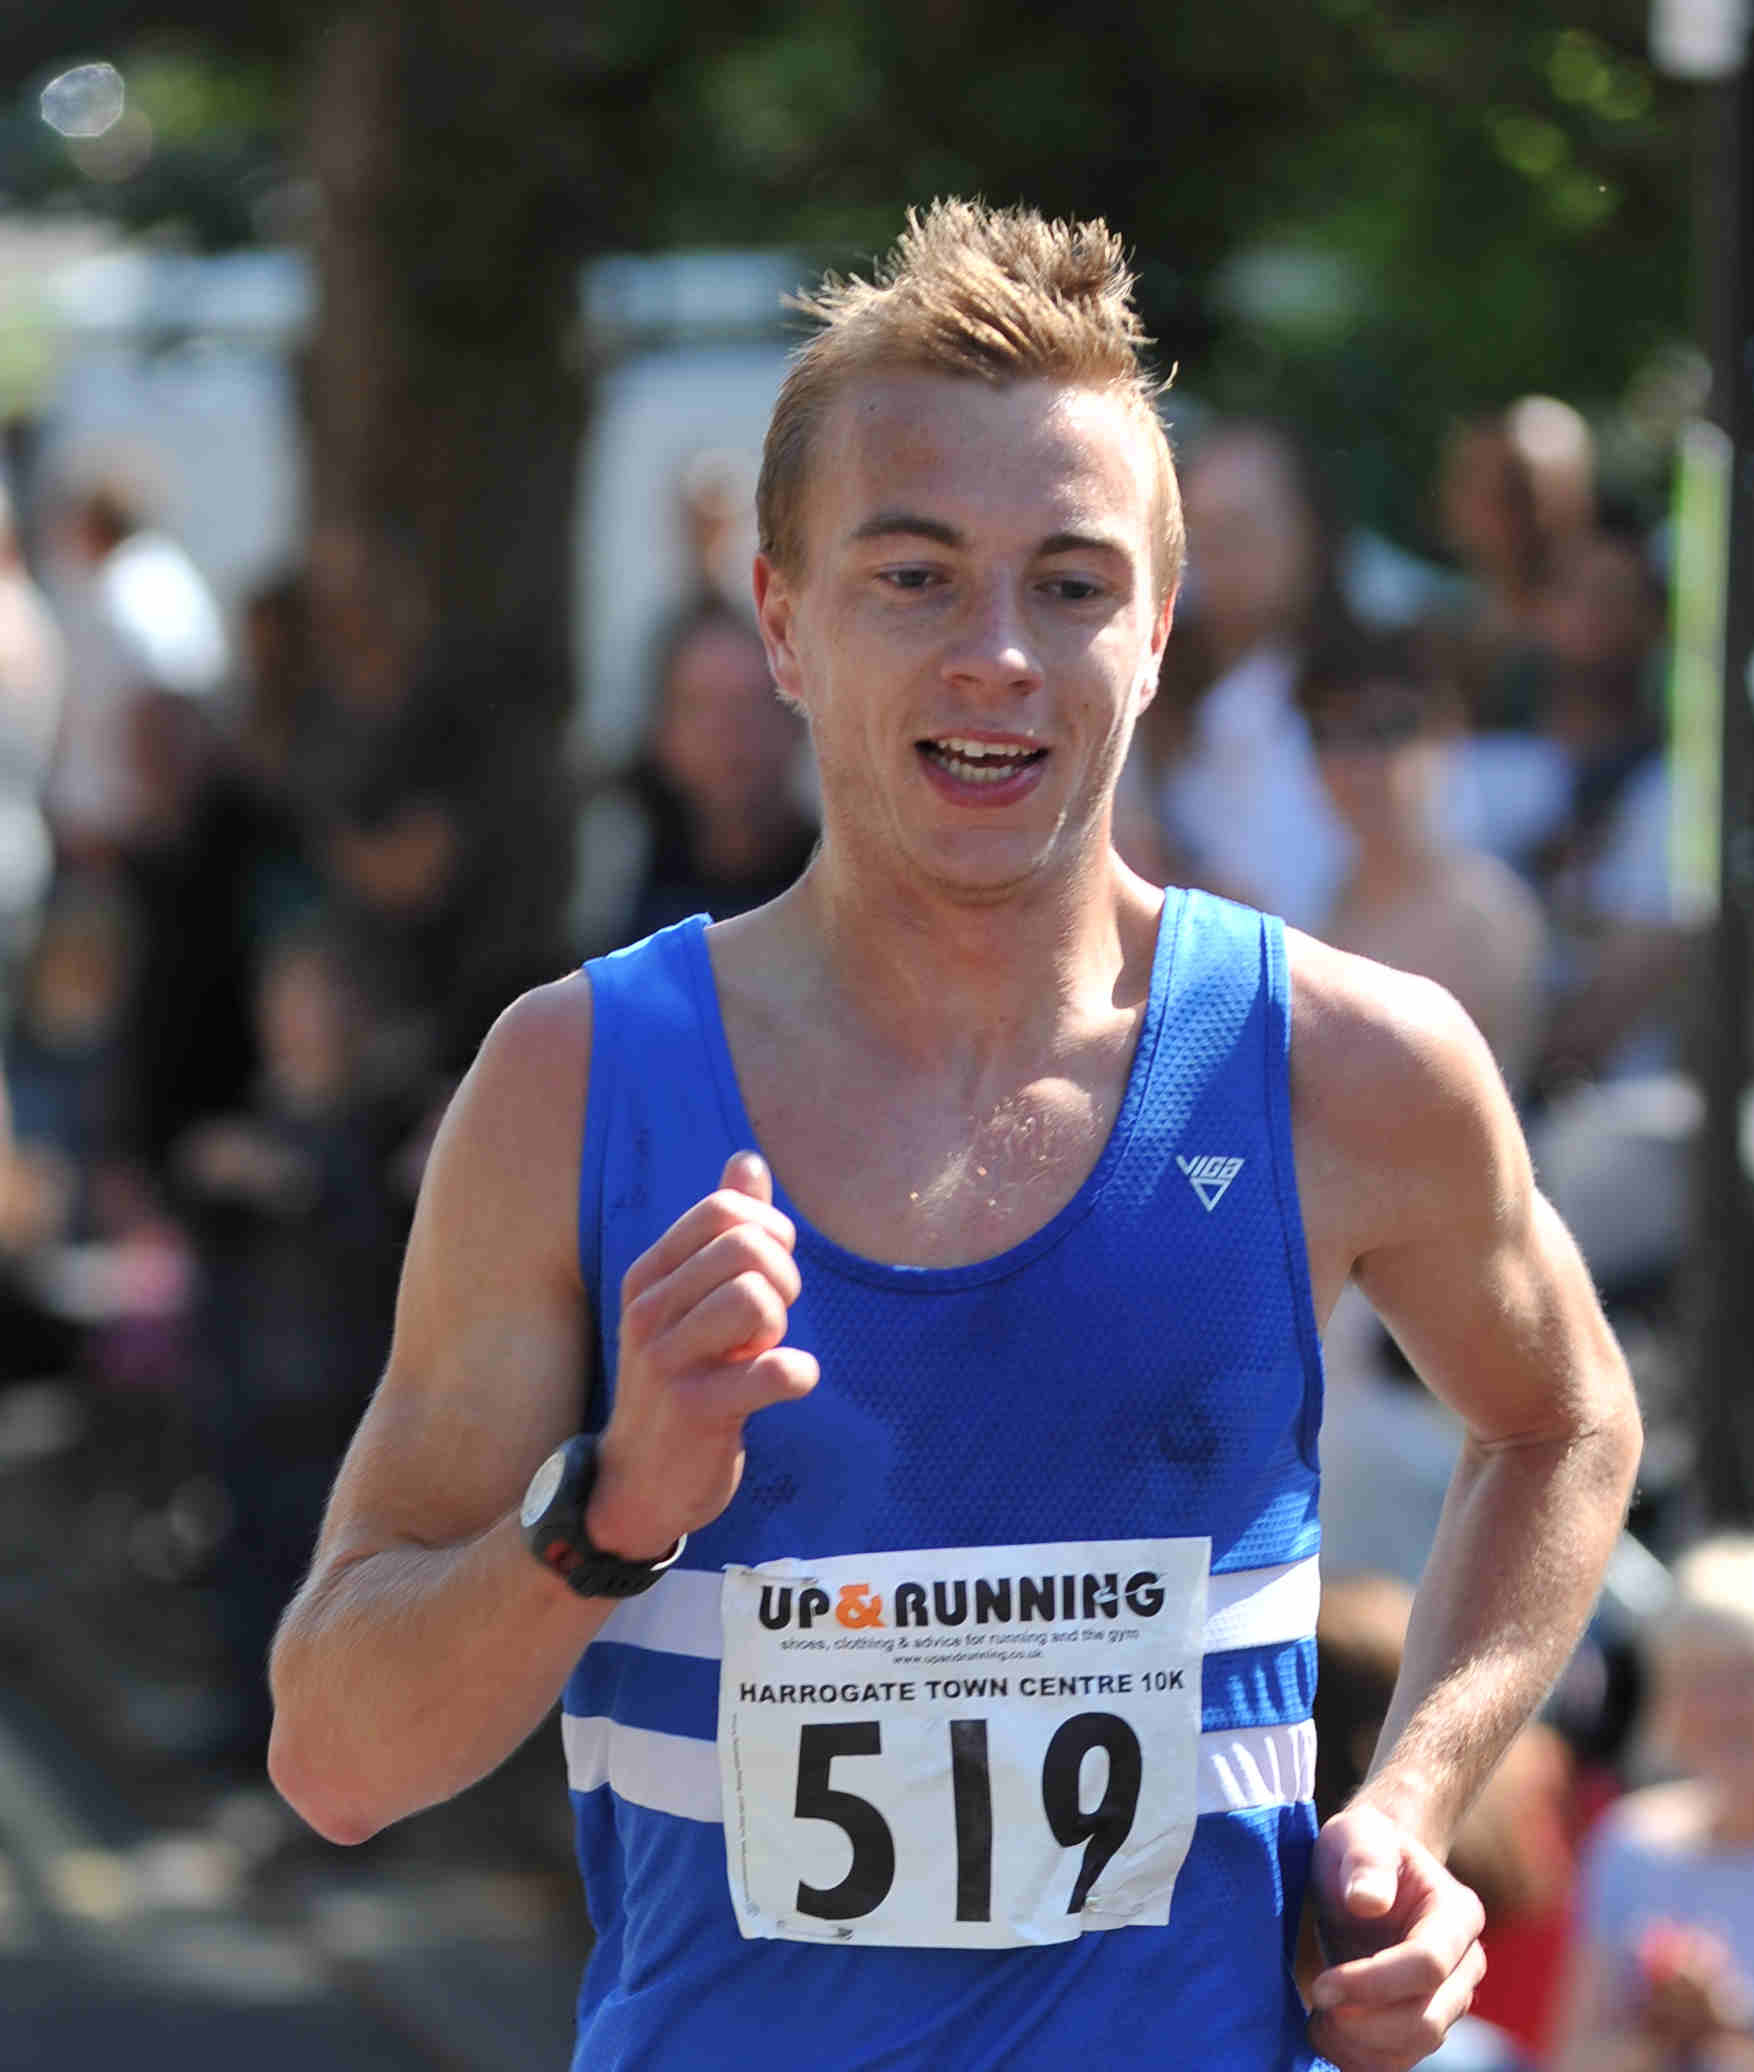 Nick Swinburn: back on the GB team for the first time since 2015